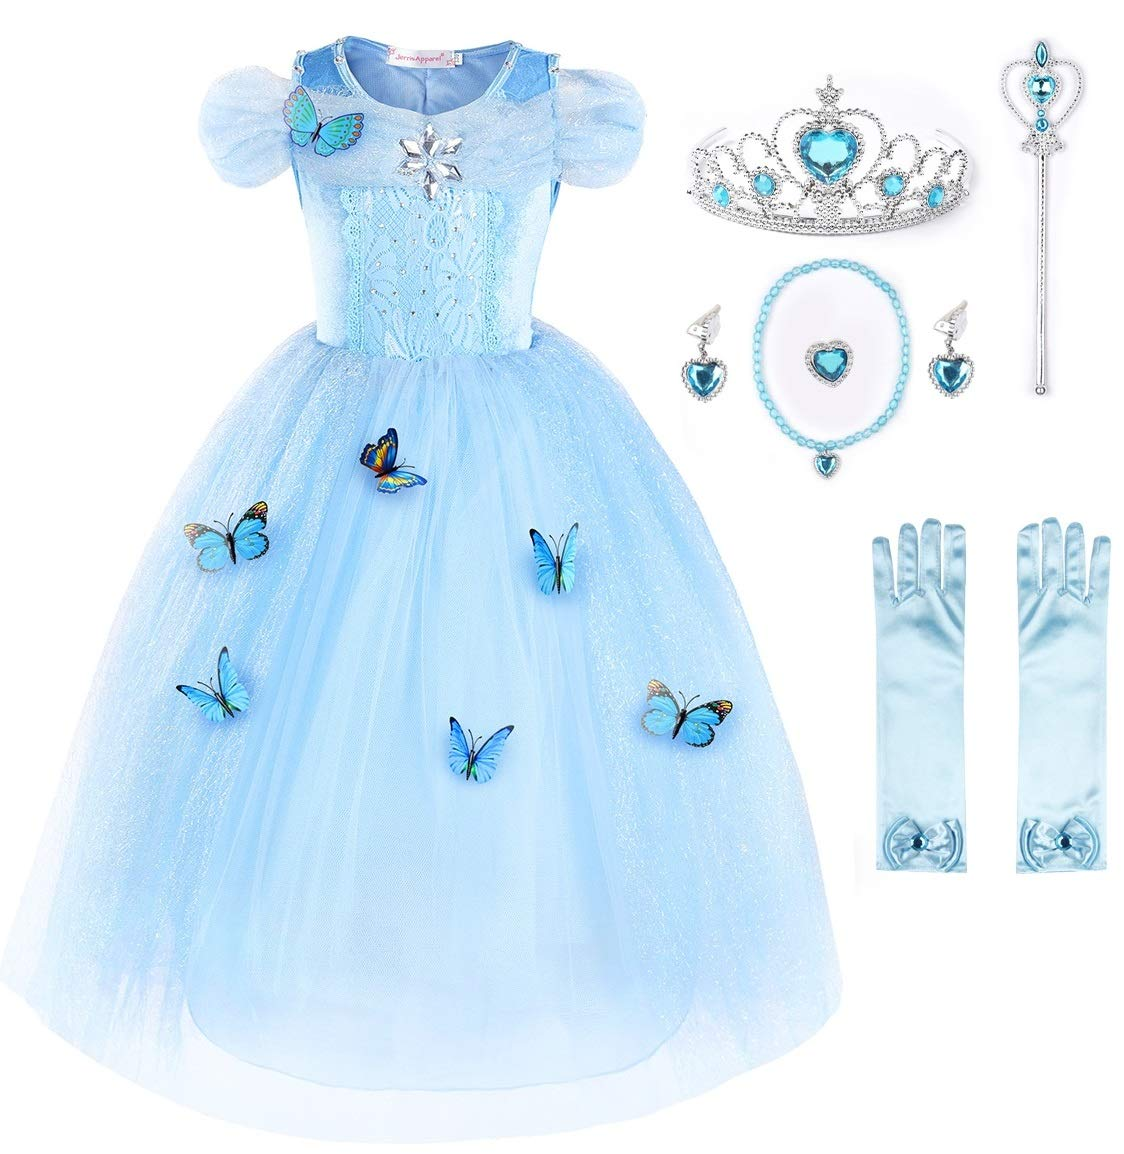 JerrisApparel New Cinderella Dress Princess Costume Butterfly Girl (3 Years, Sky Blue with Accessories) by JerrisApparel